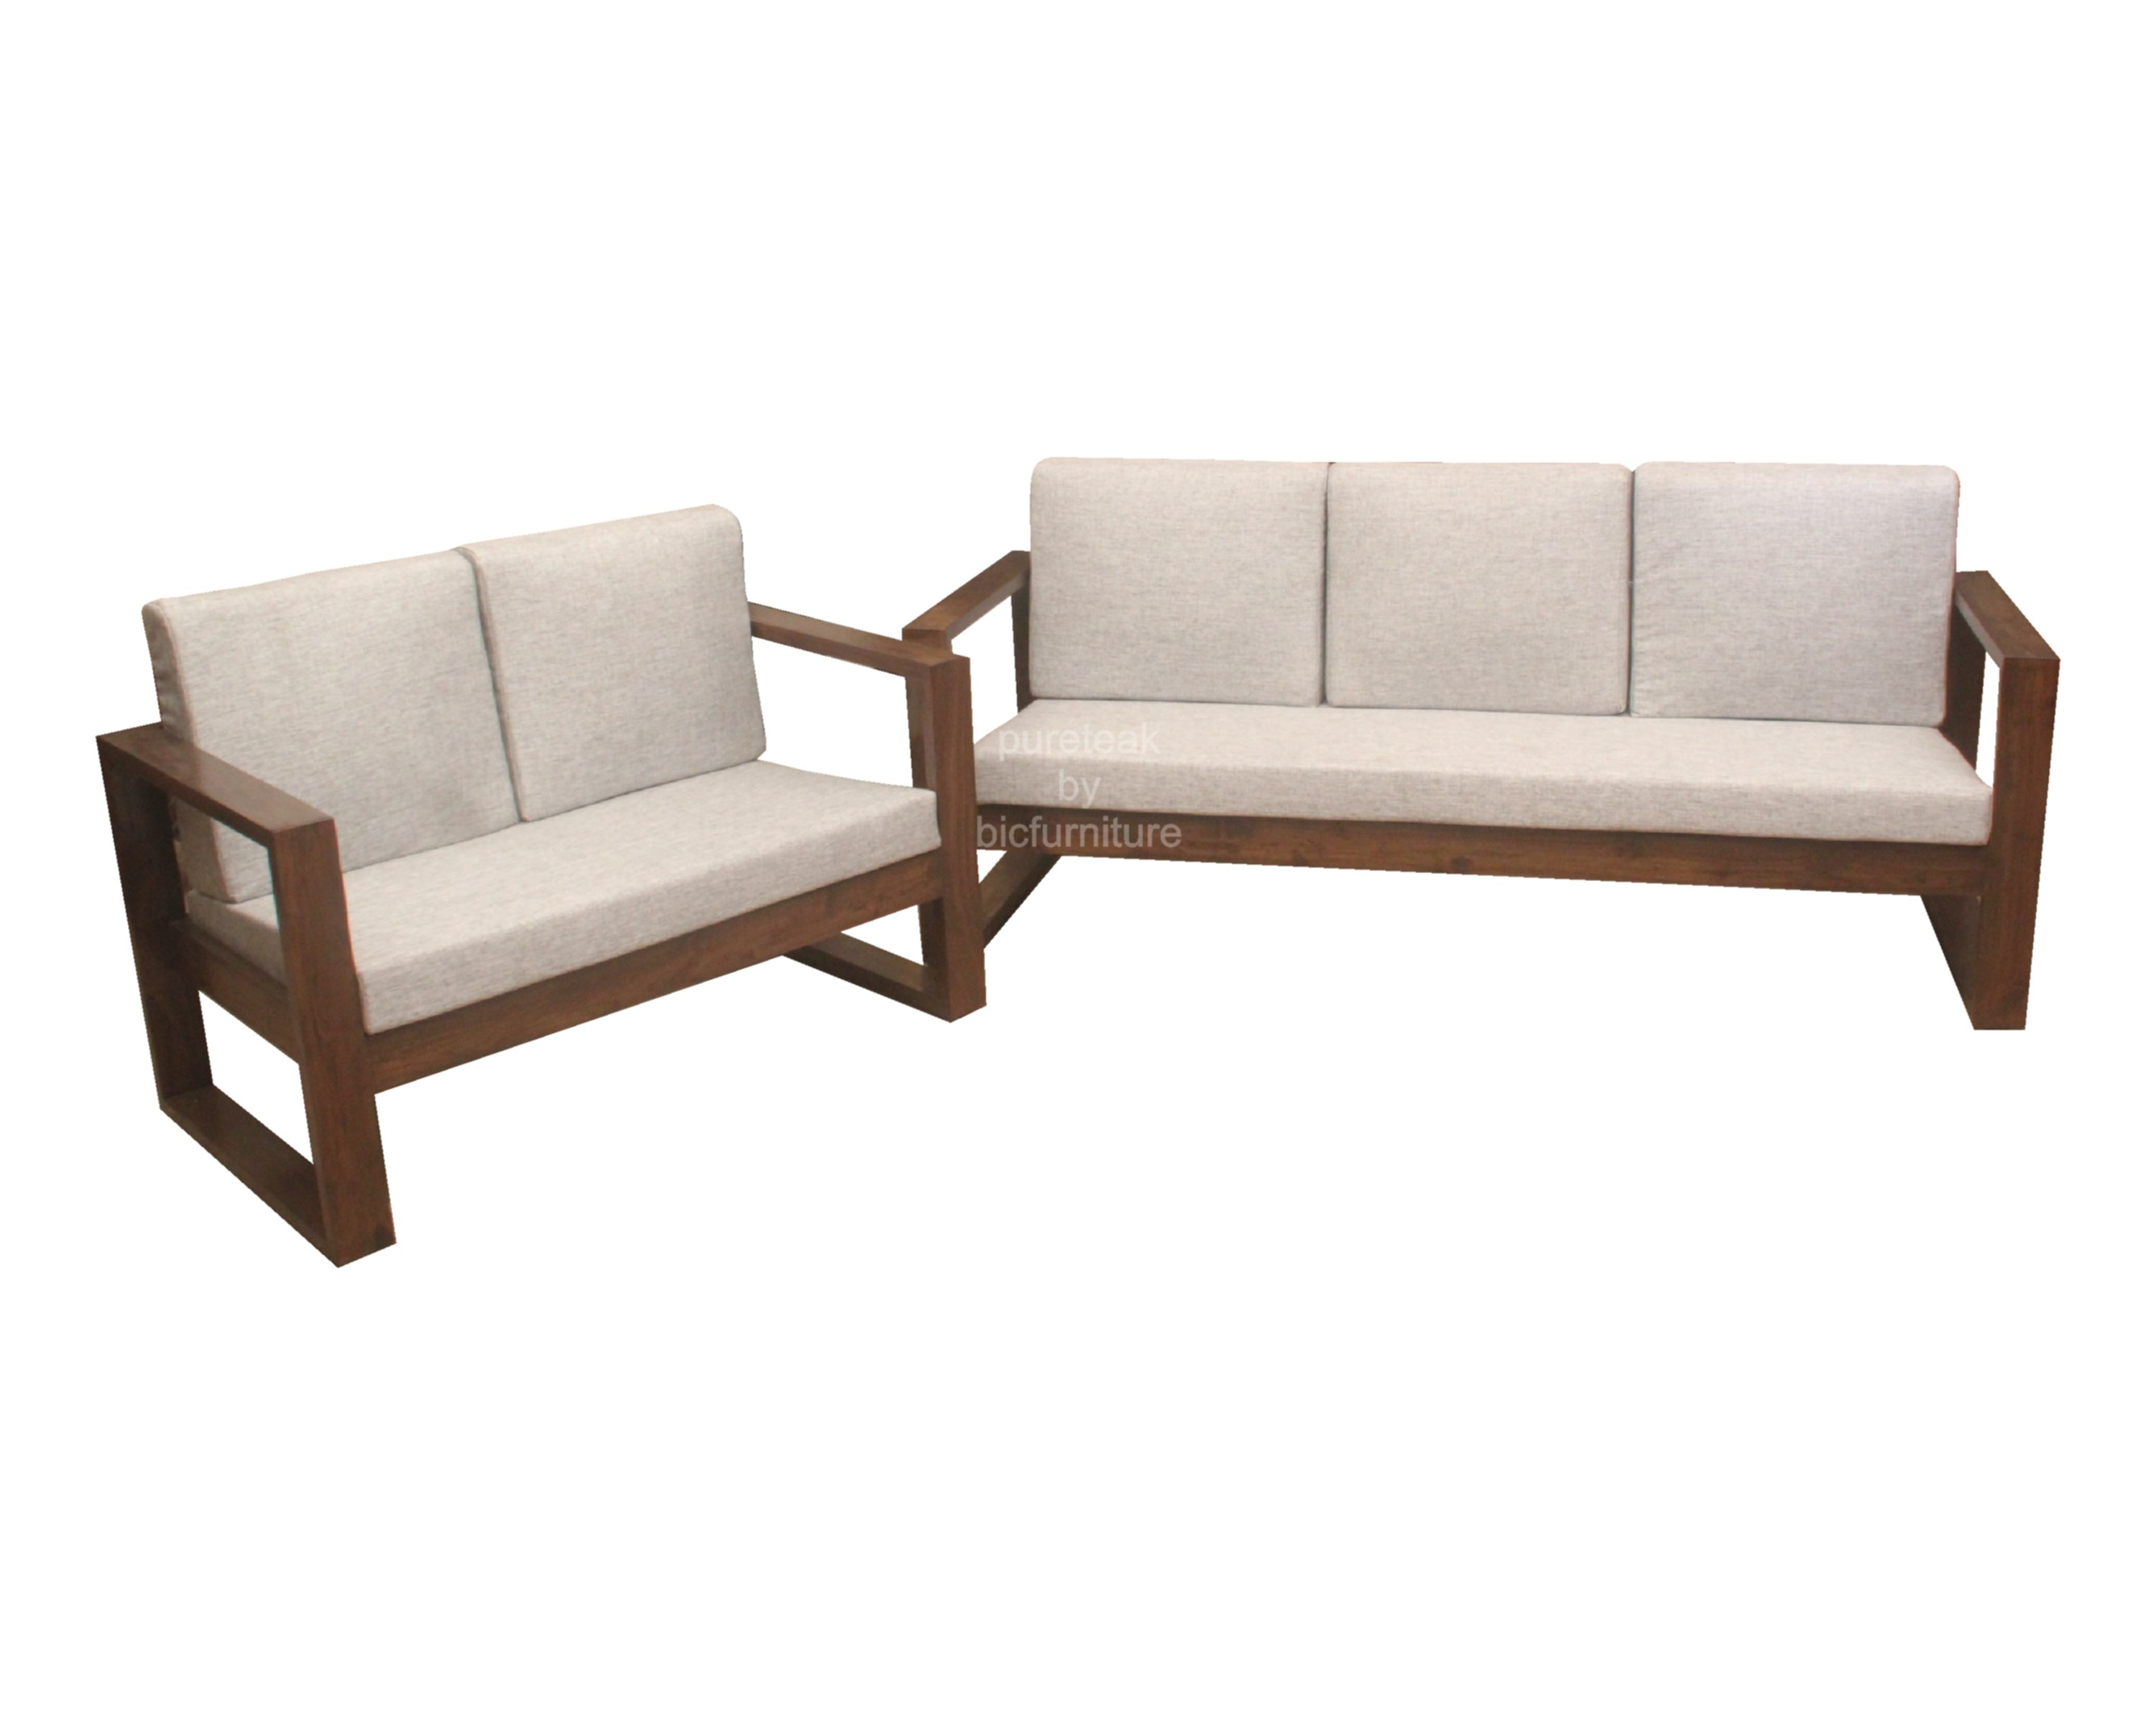 Simple wooden sofa set designs design decoration